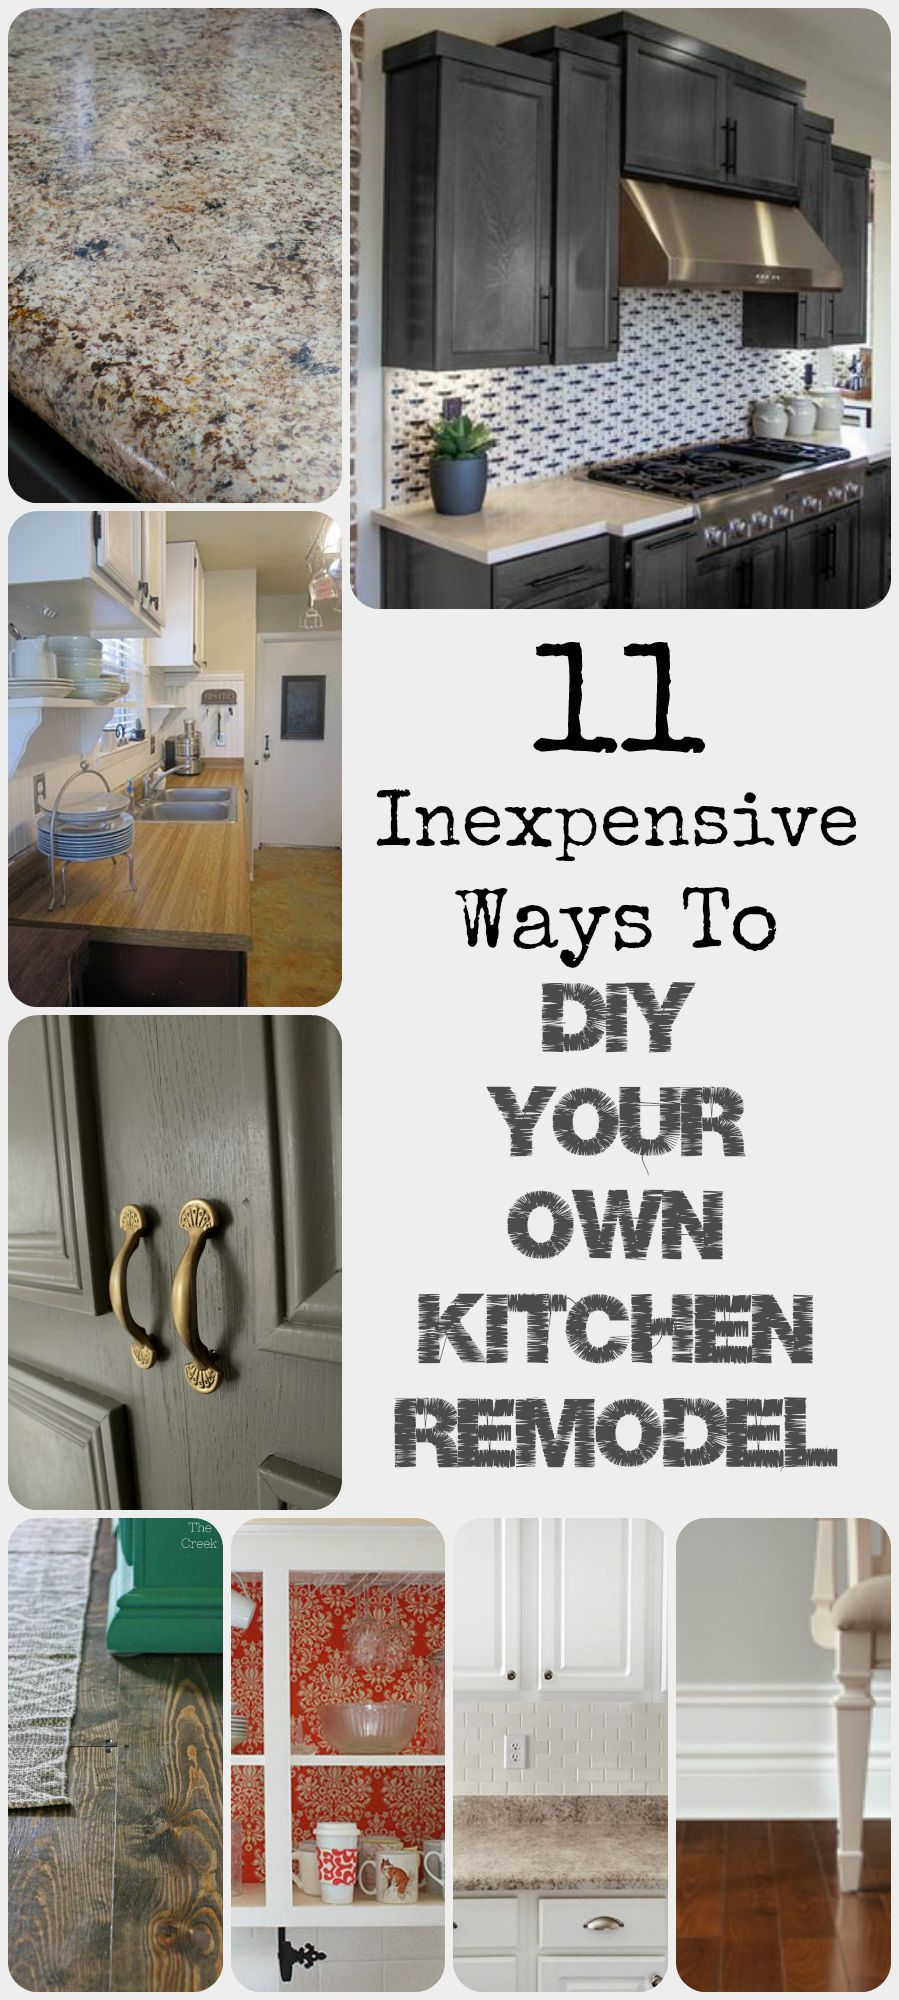 New Kitchen Floor 11 Ways To Diy Kitchen Remodel Money Countertops And New Kitchen